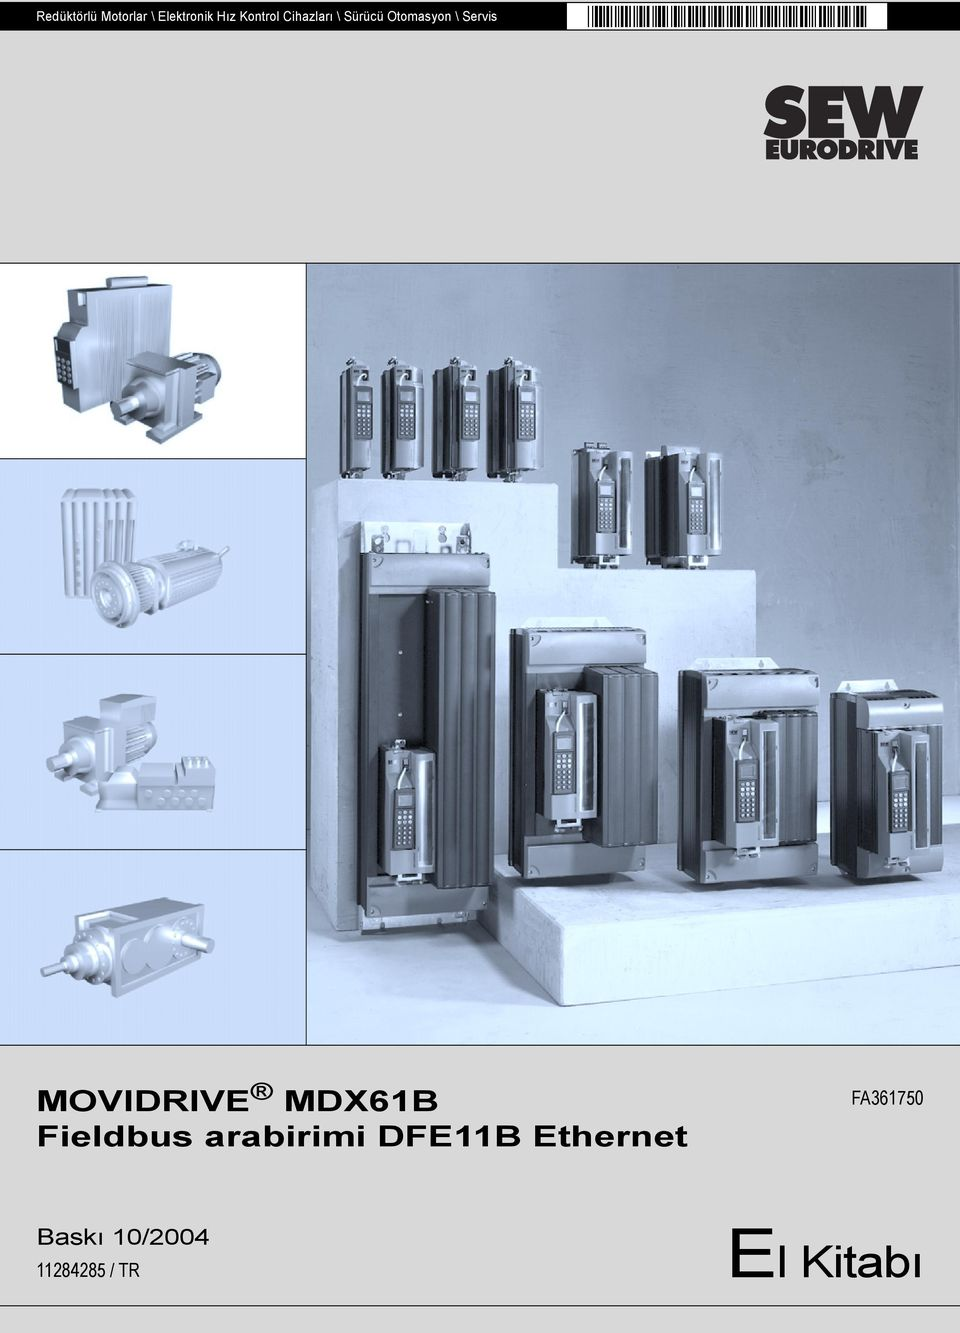 MOVIDRIVE MDX61B Fieldbus arabirimi DFE11B